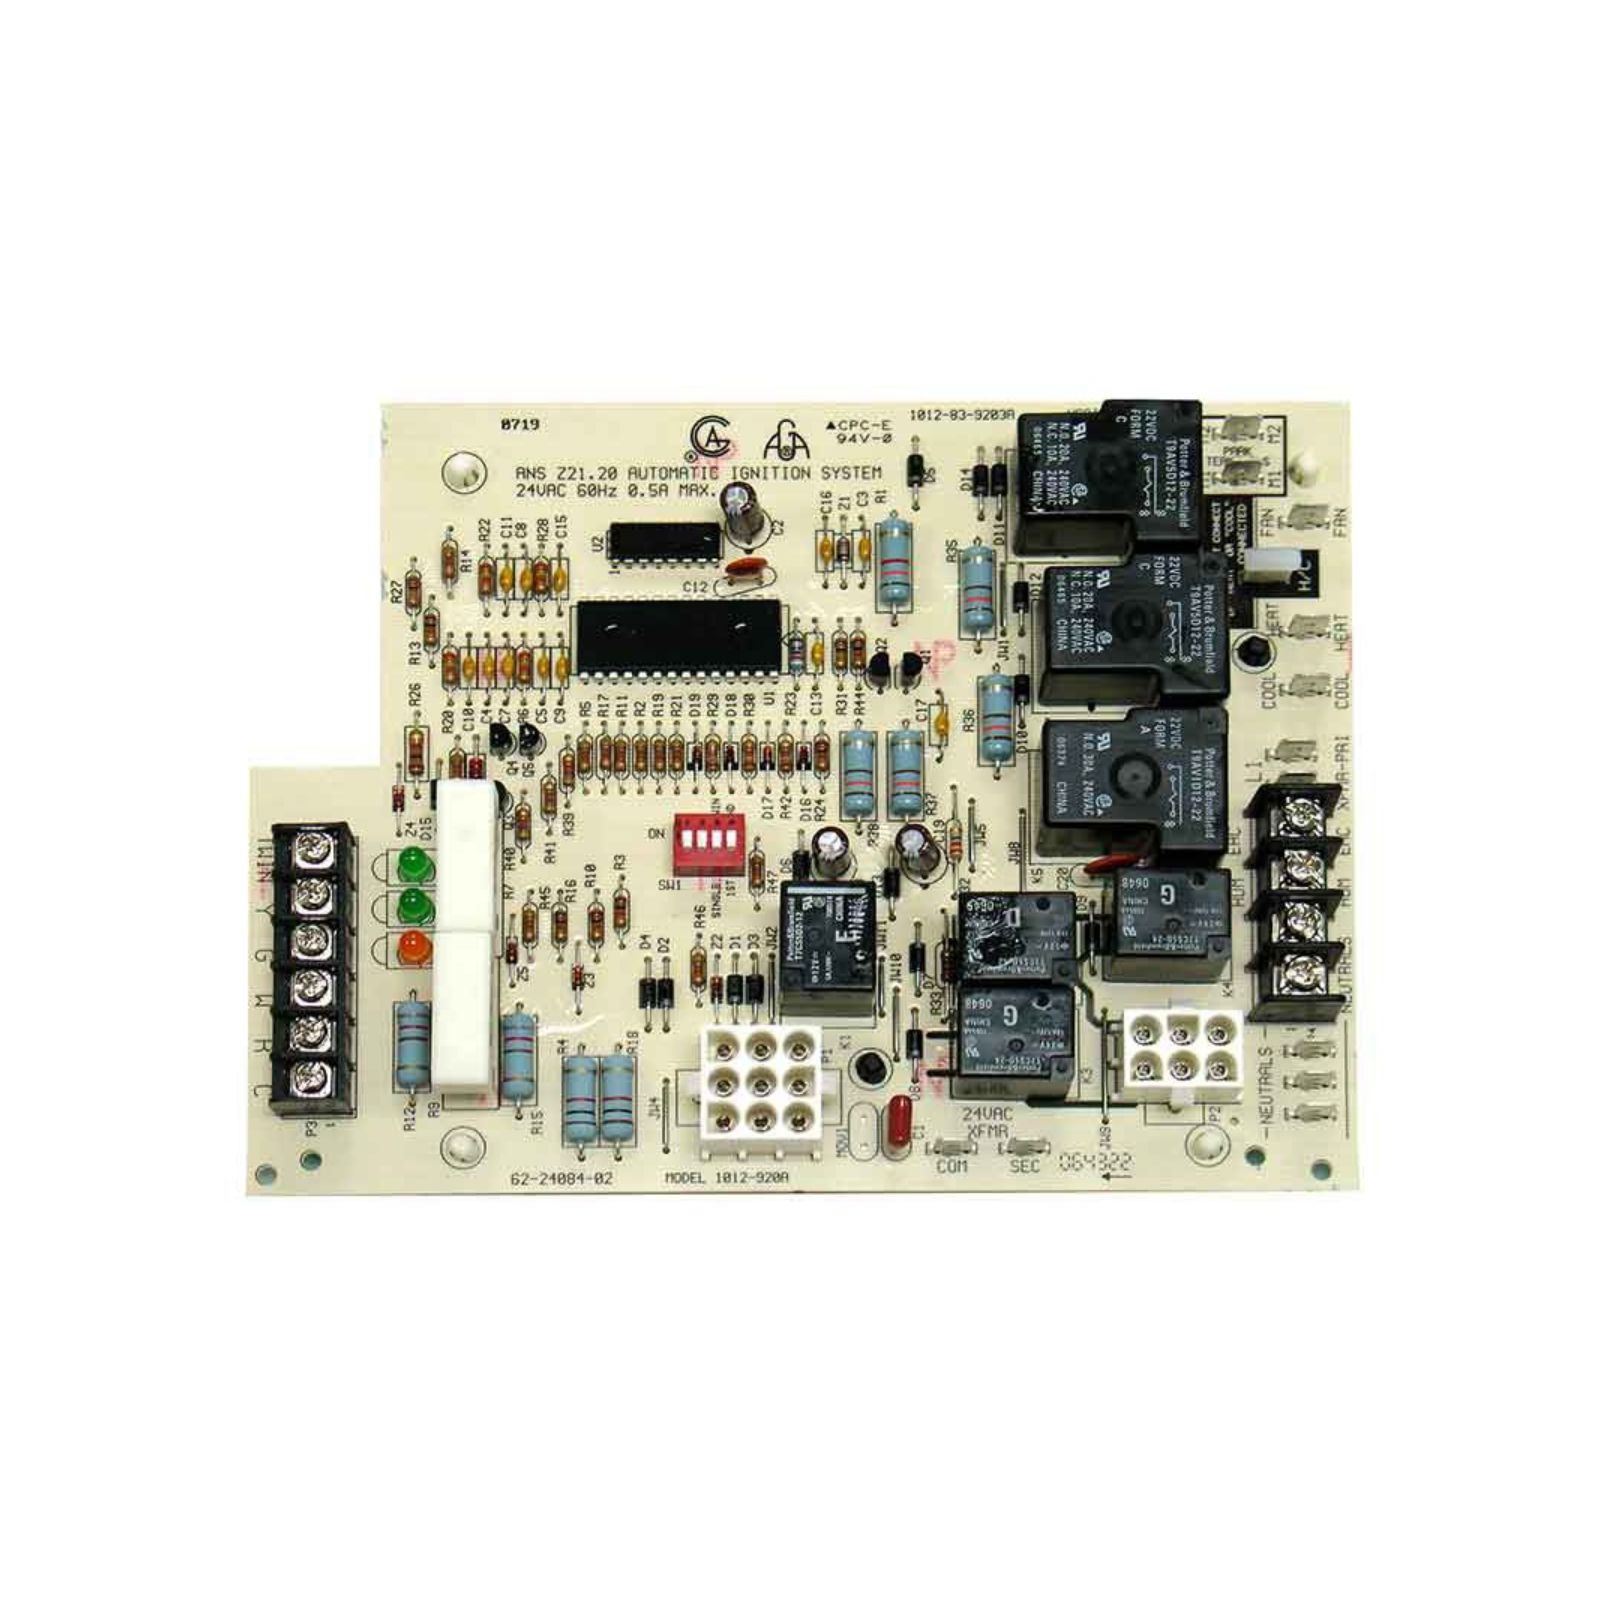 Rheem 62-24084-82 - Integrated Furnace Control Board (IFC), Gas Codes DC, DH